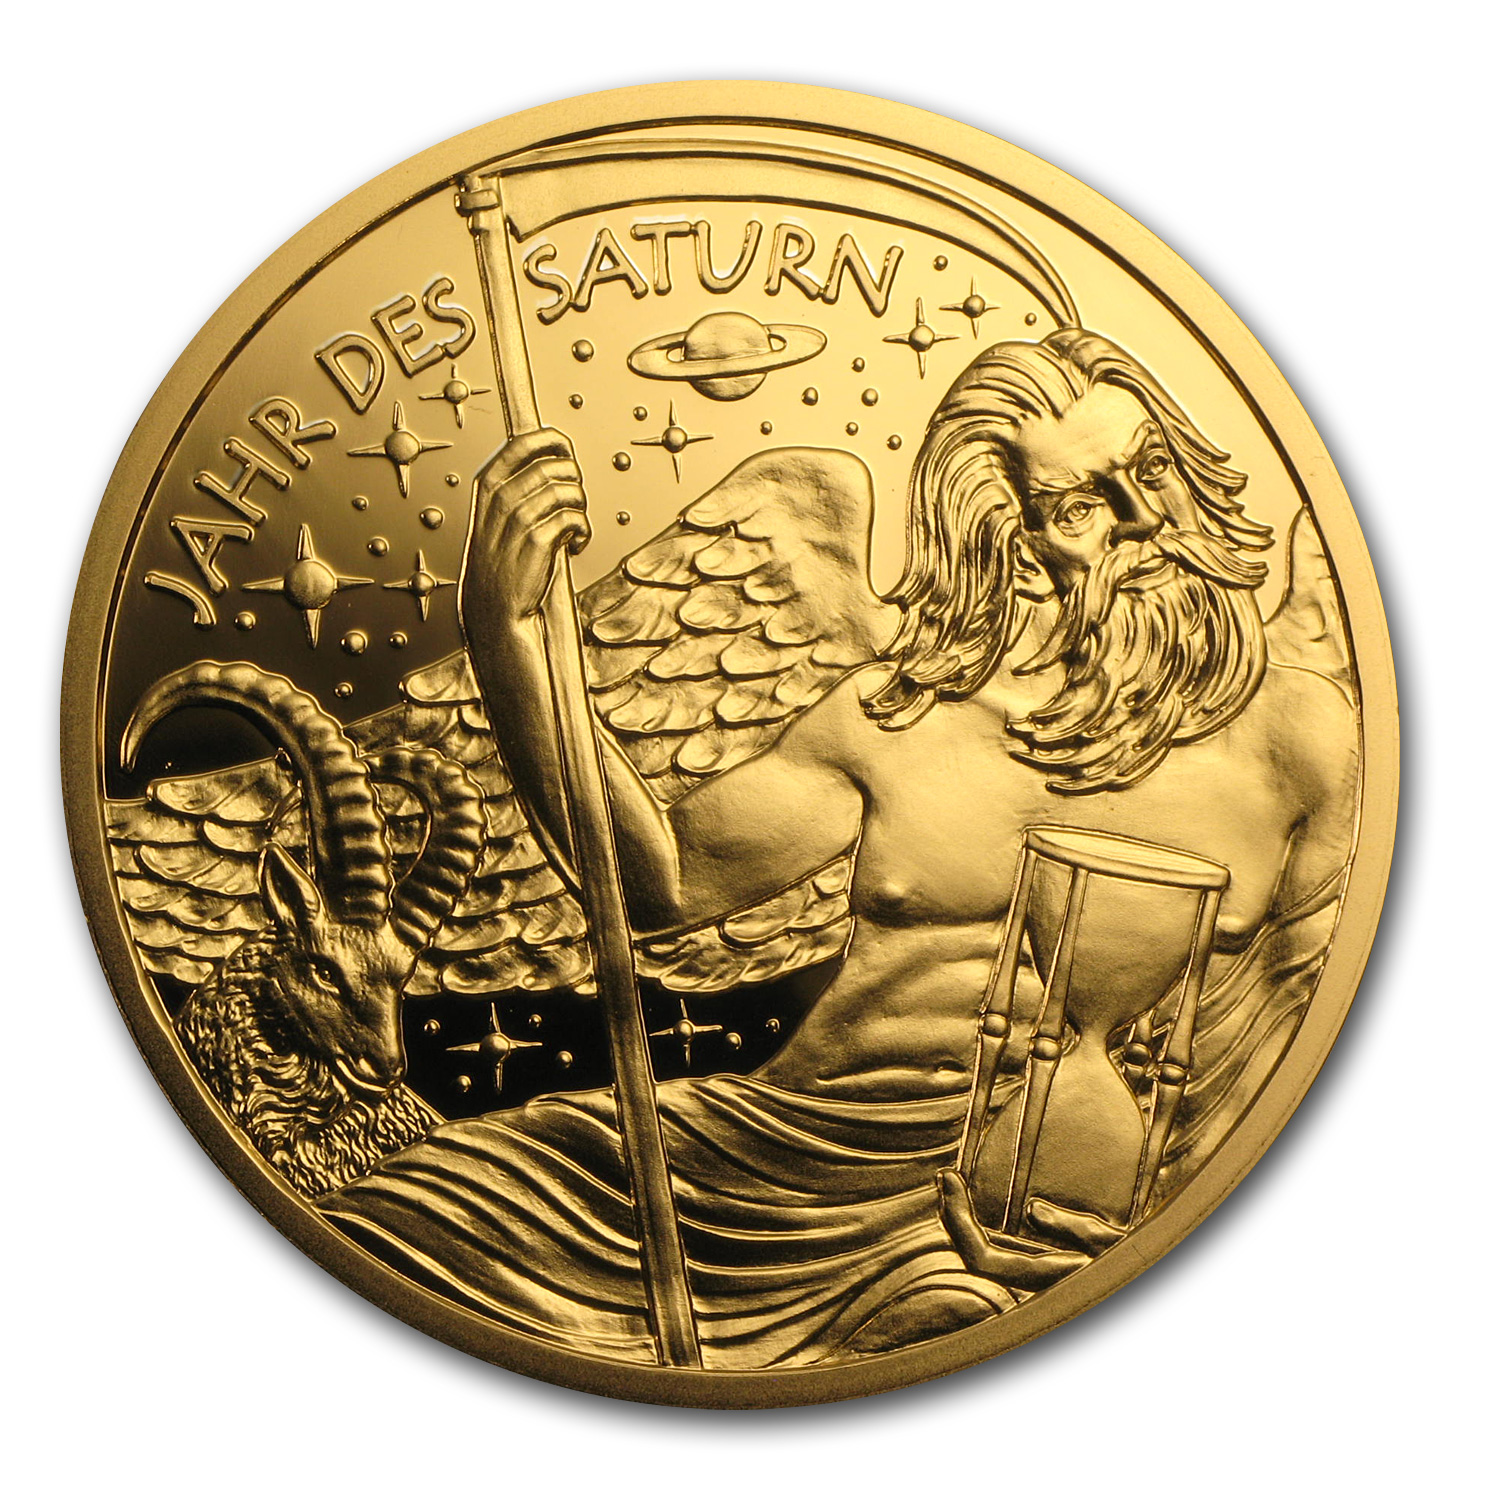 2014 Austria Gold Golden Age of Saturn (Kalendermedaille)